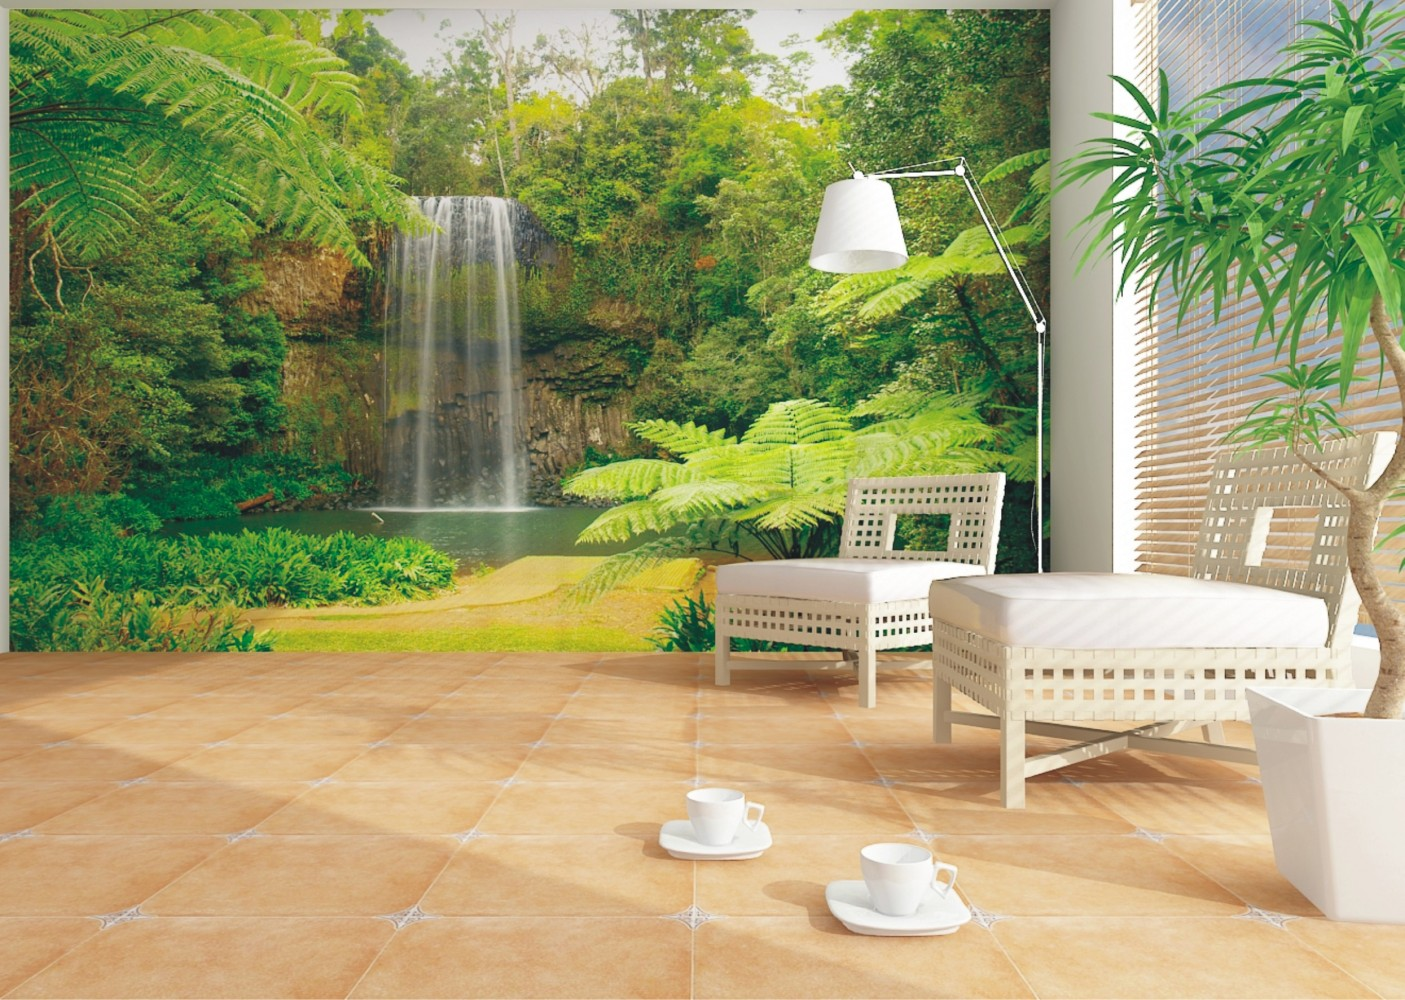 Wall mural wallpaper nature jungle downfall plant photo for Mural 3d wallpaper